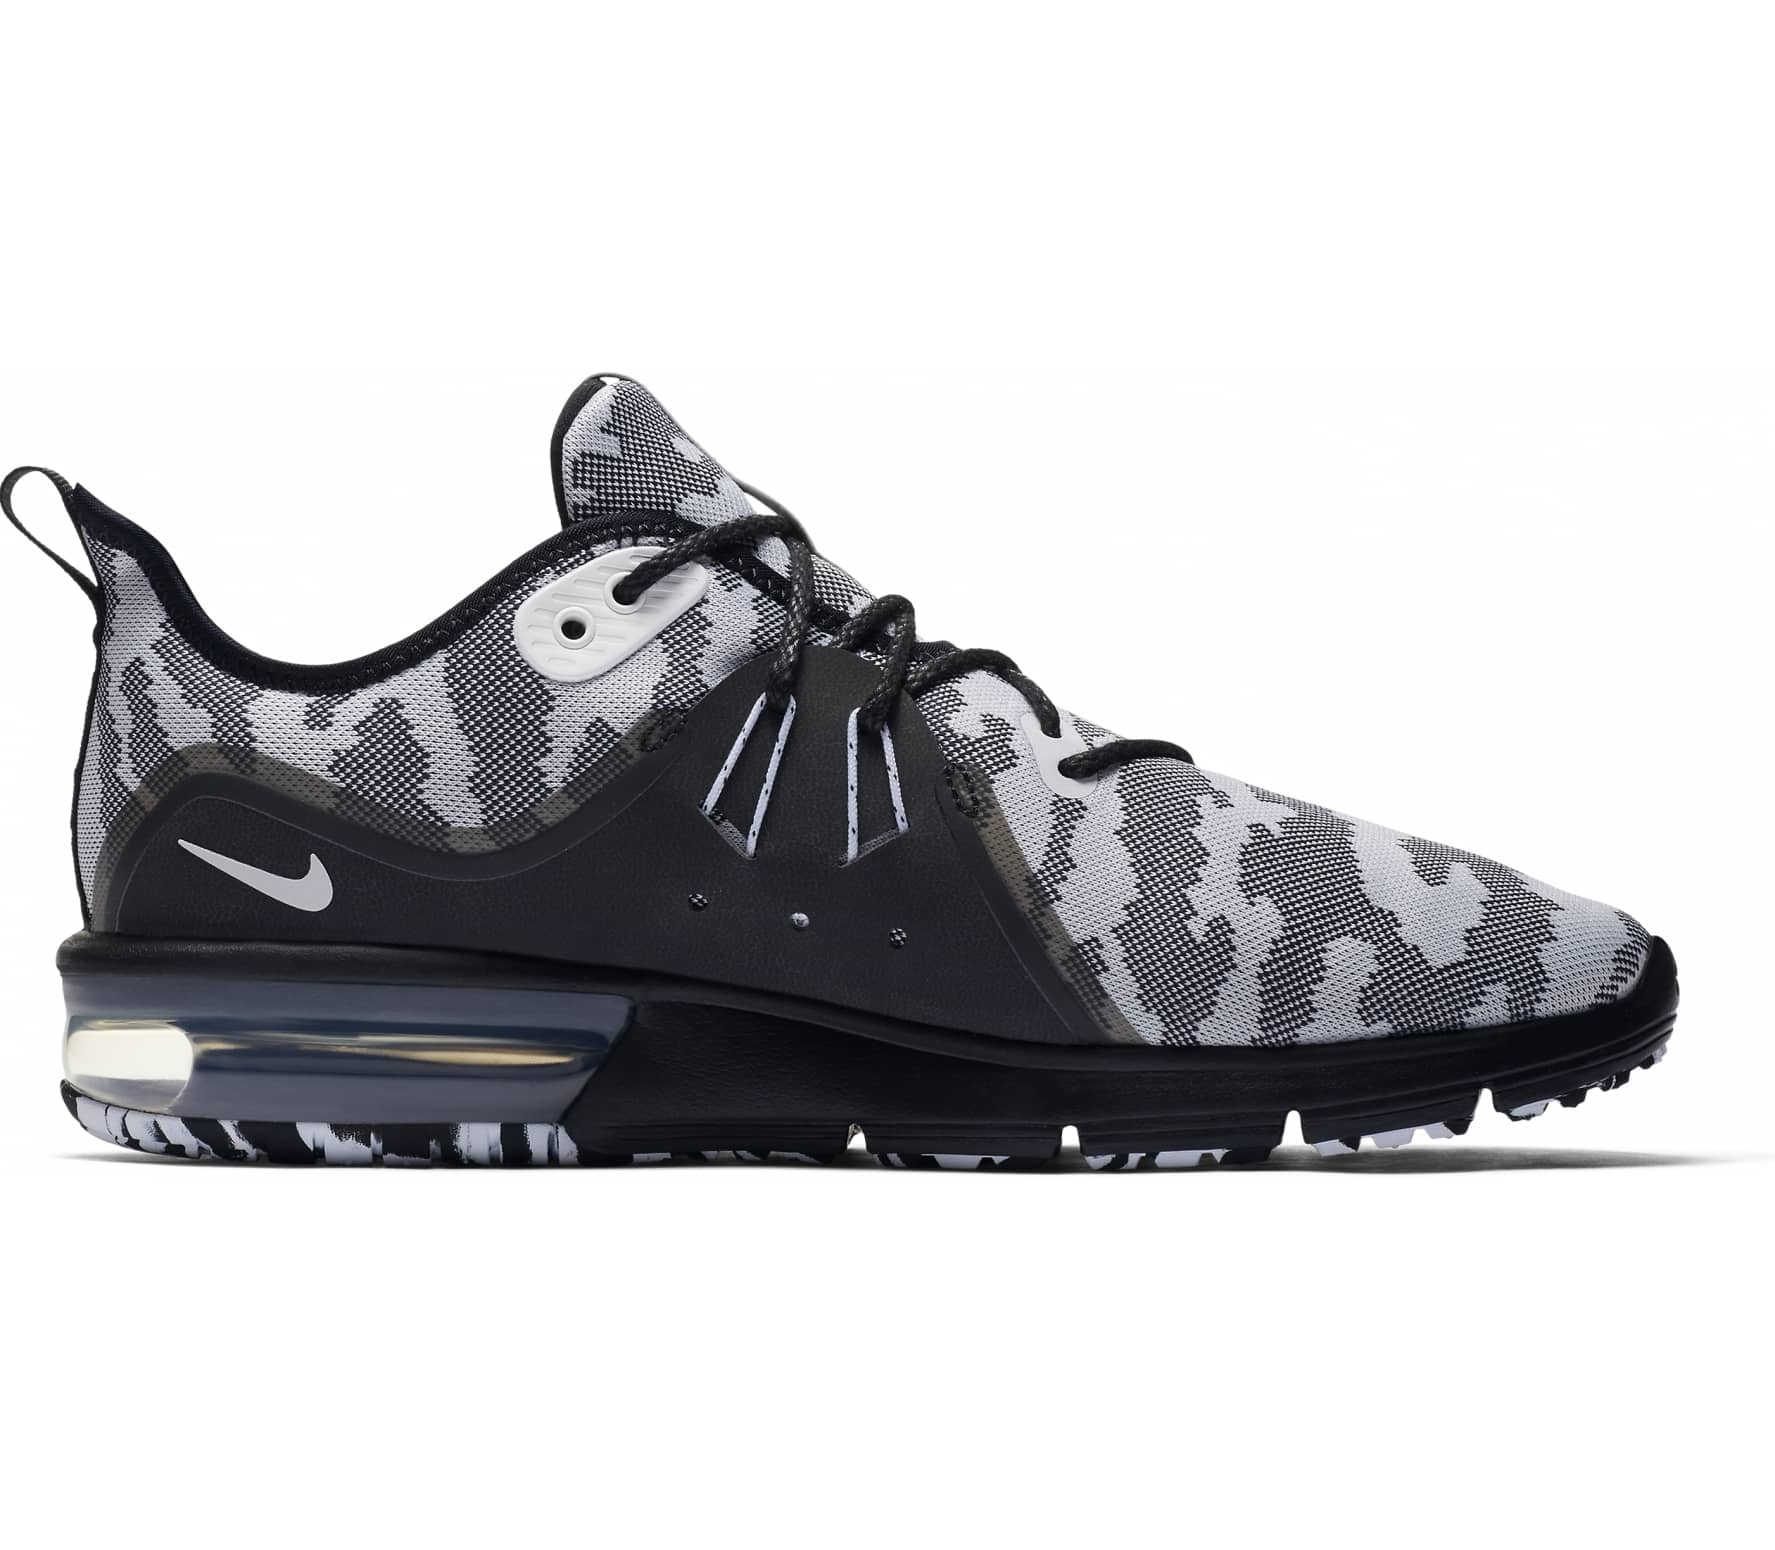 timeless design ea75a 5c52b Nike - Air Max Sequent 3 men s running shoes (black)